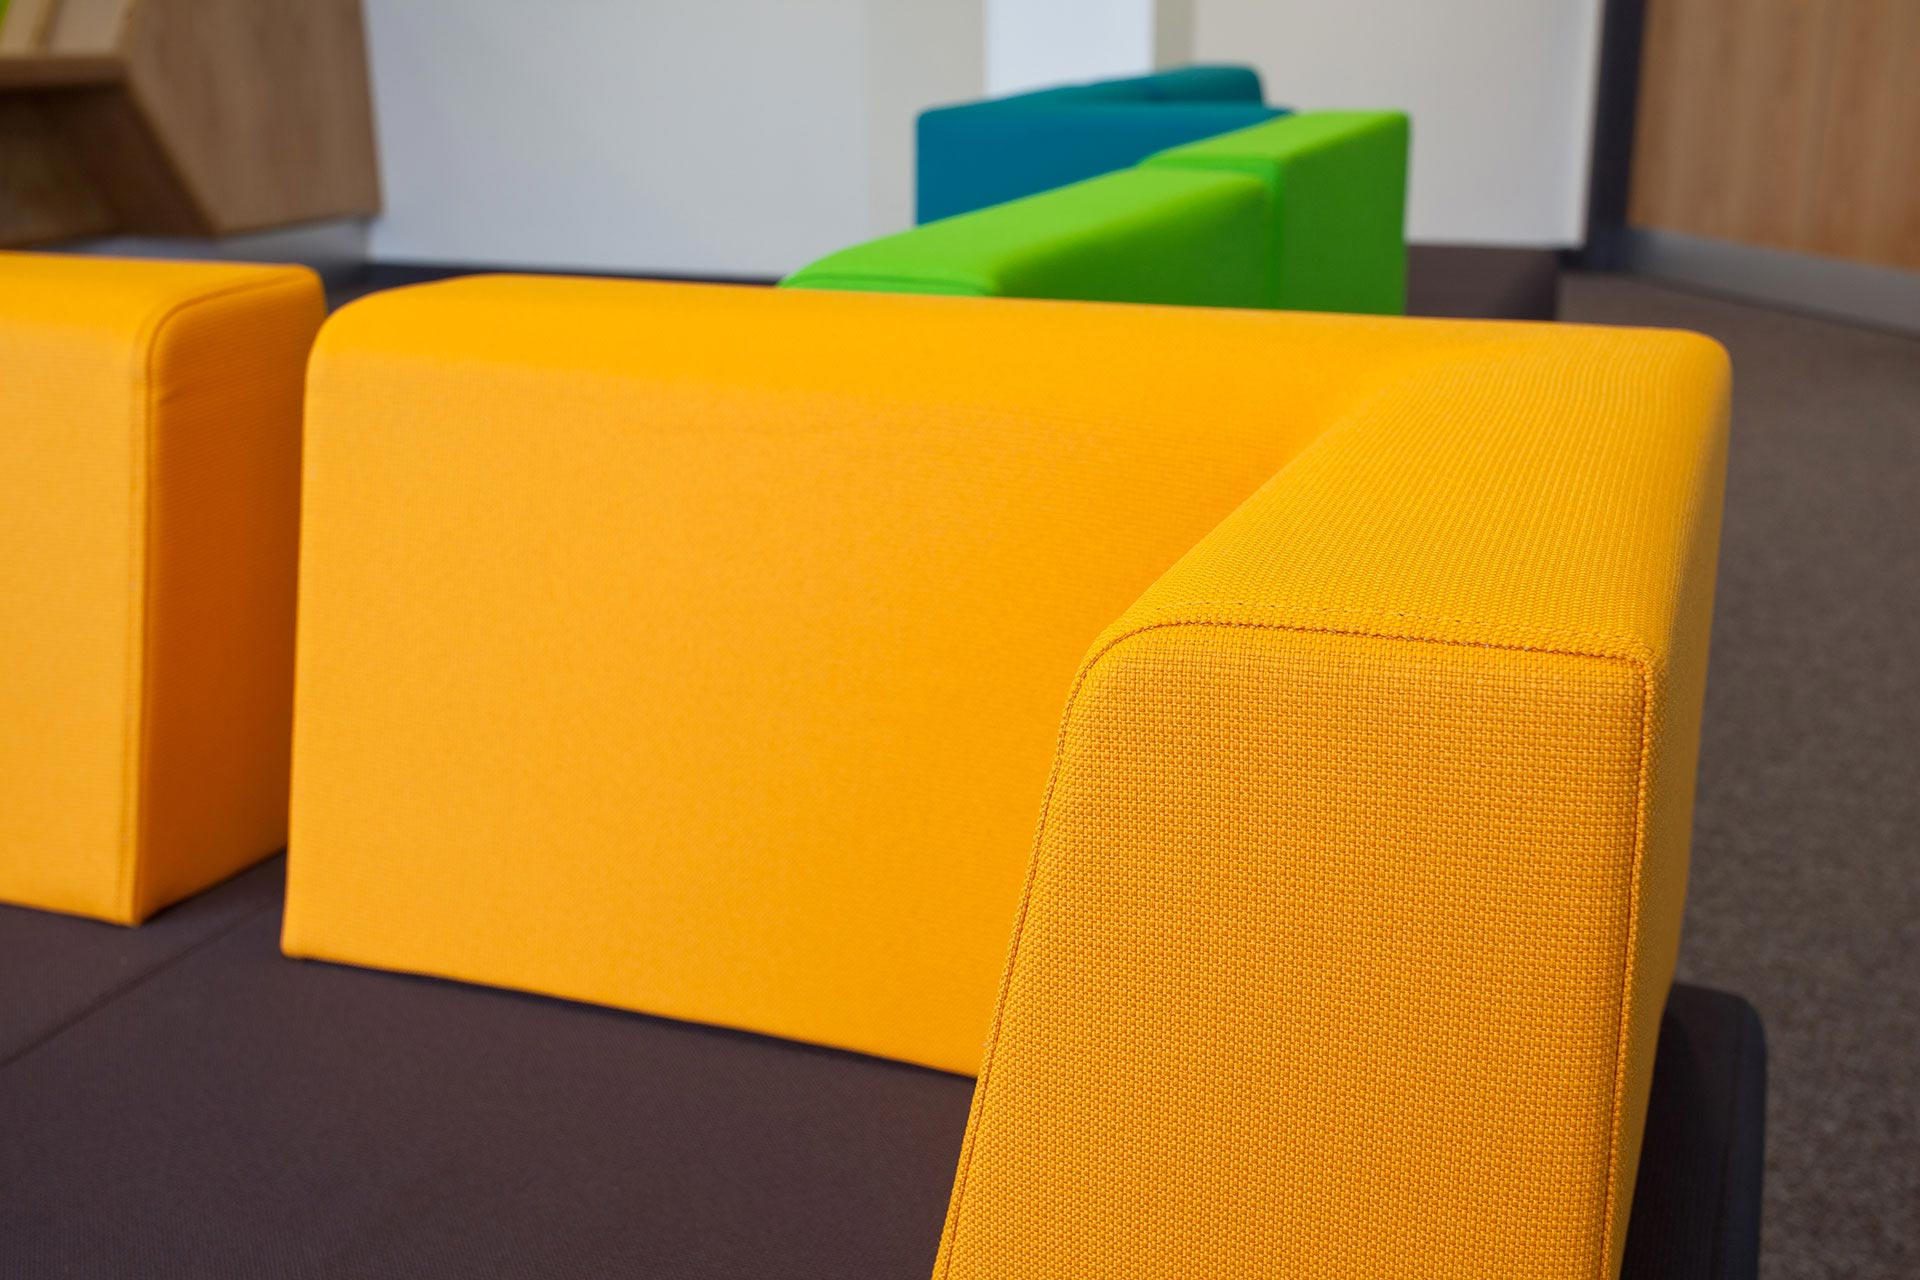 Colourful waiting room seating upholstery